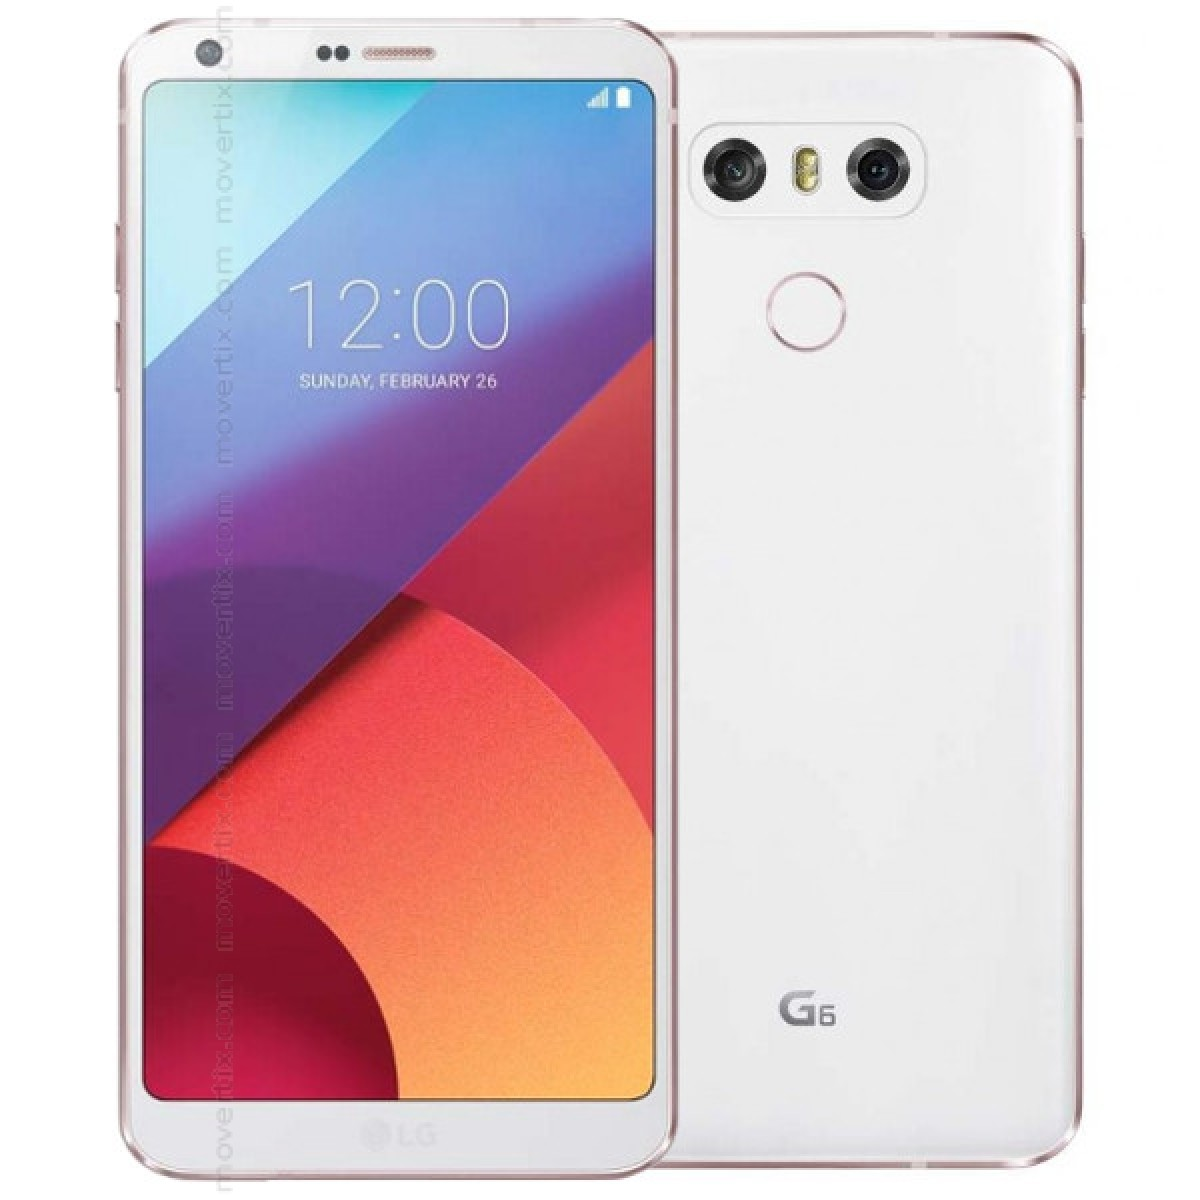 Moviles Libres Xiaomi Lg G6 En Blanco H870 8806087020106 Movertix Tienda